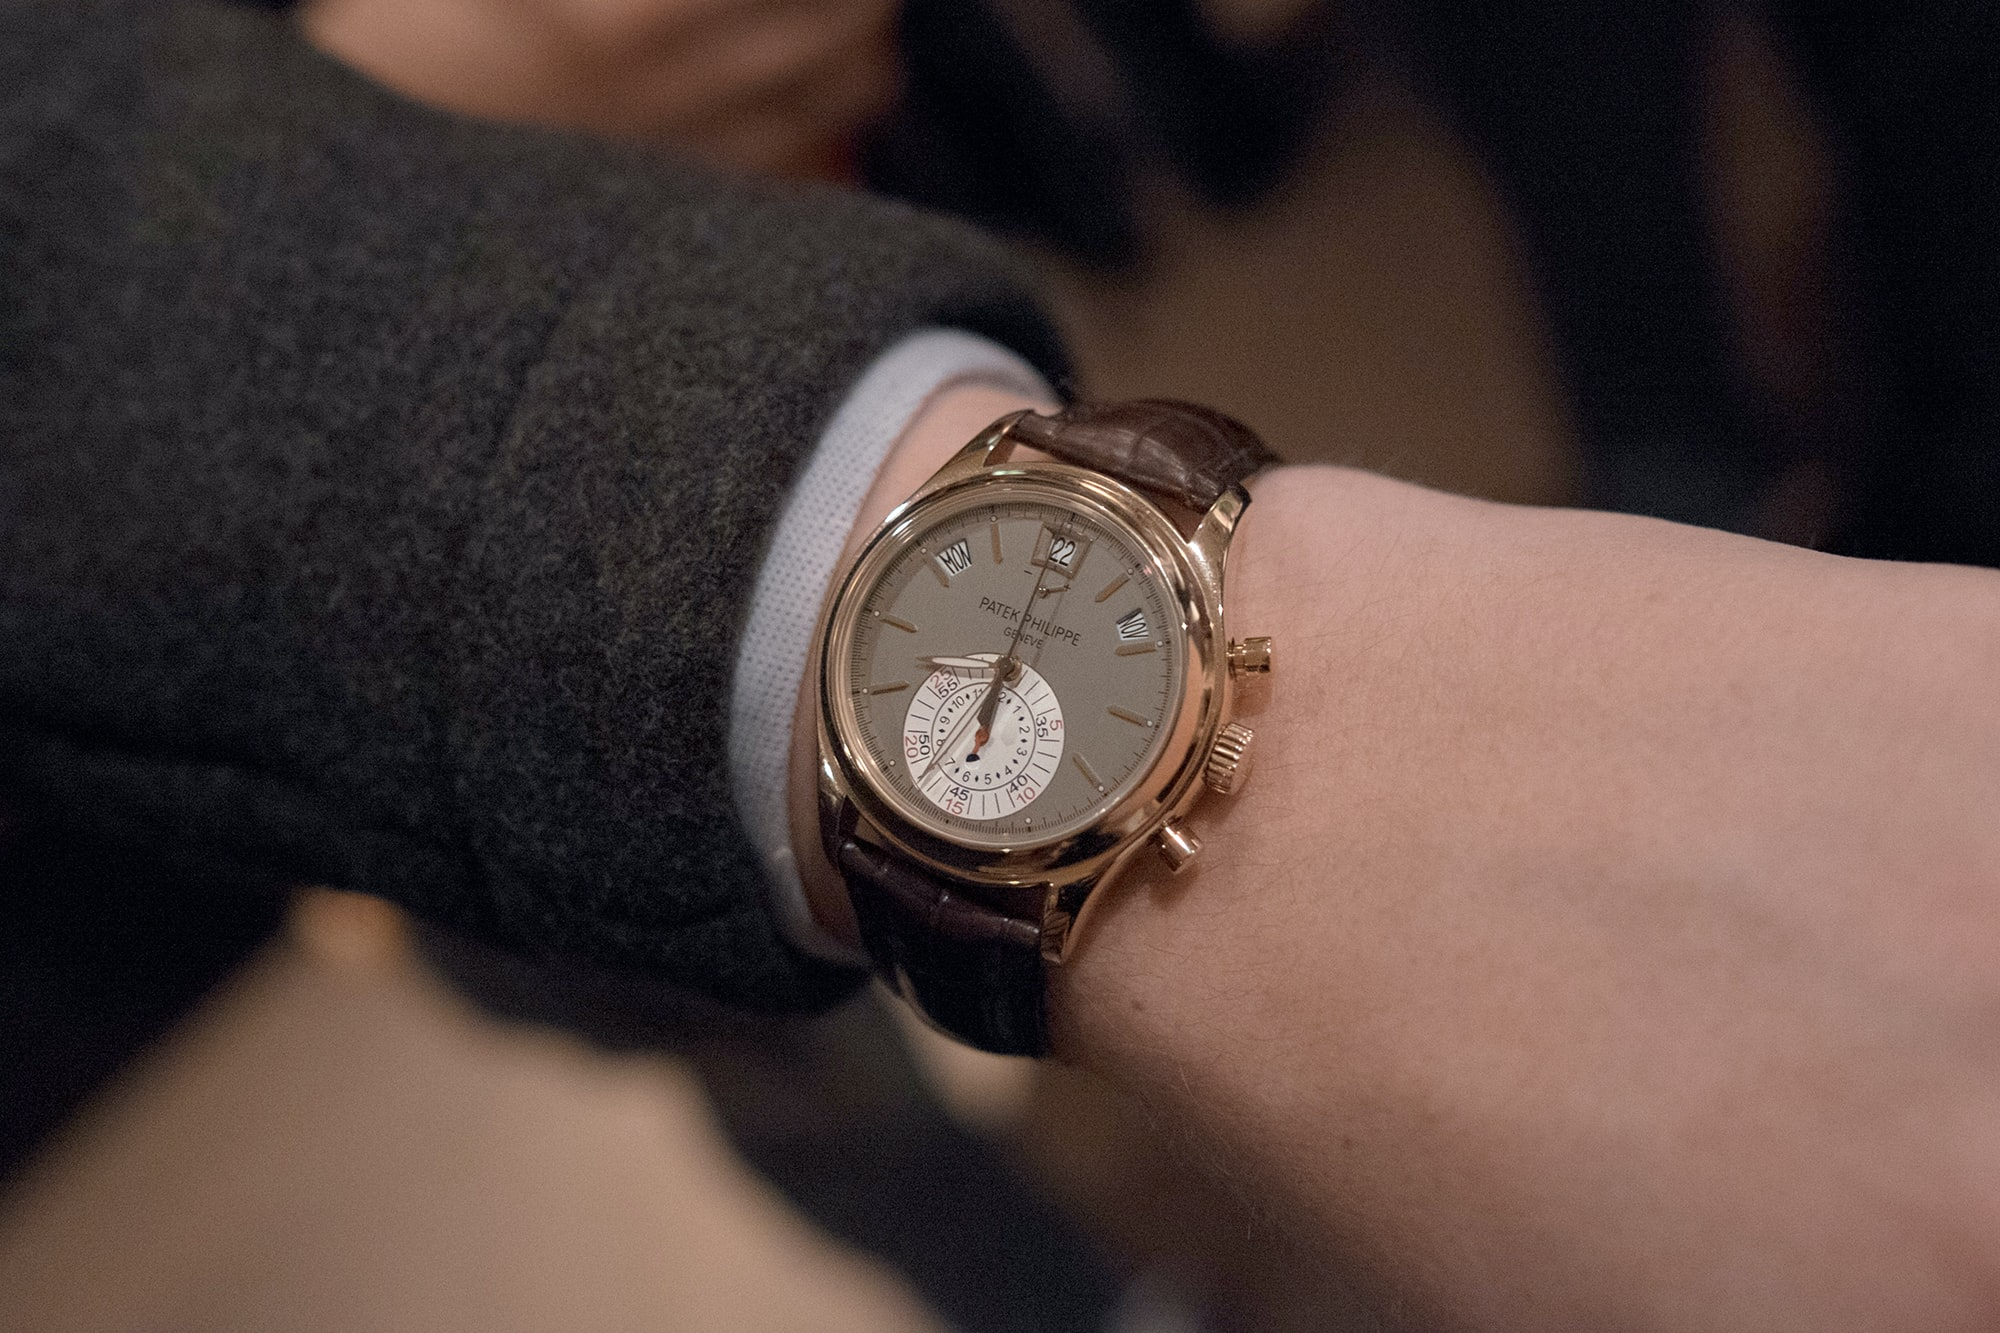 Photo Report: Watch Spotting At The HODINKEE Meet-Up In London (Plus Our Holiday 2016 Pop-Up At Harrods) Photo Report: Watch Spotting At The HODINKEE Meet-Up In London (Plus Our Holiday 2016 Pop-Up At Harrods) Hodinkee event 29 nov 2016 61